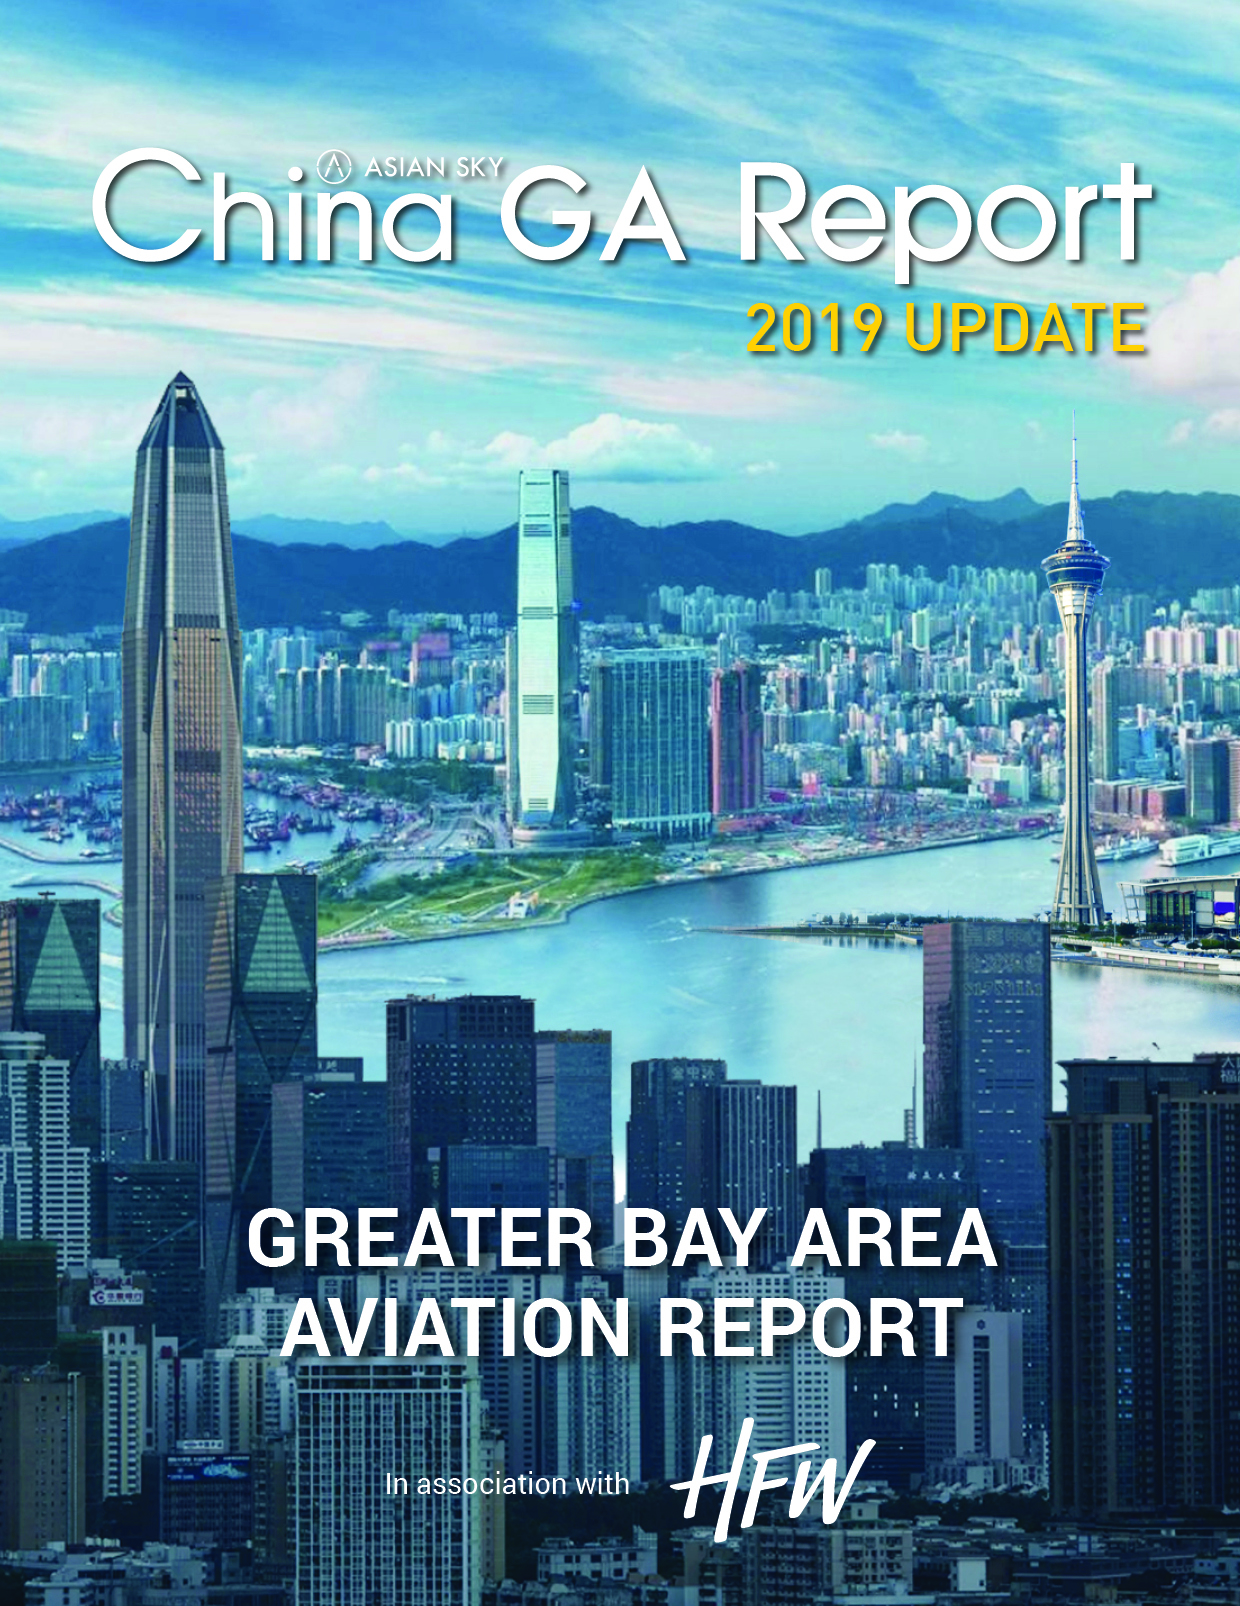 Greater Bay Area Aviation Report 2019 Update